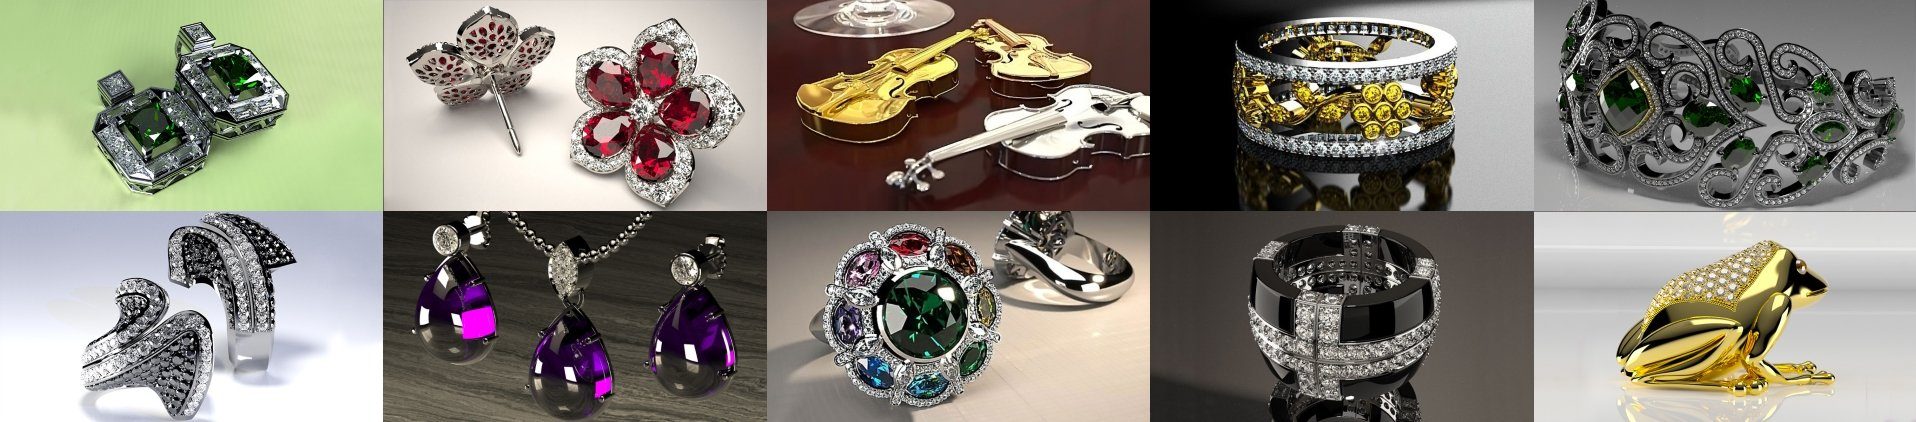 Jewelry Design Software Banner